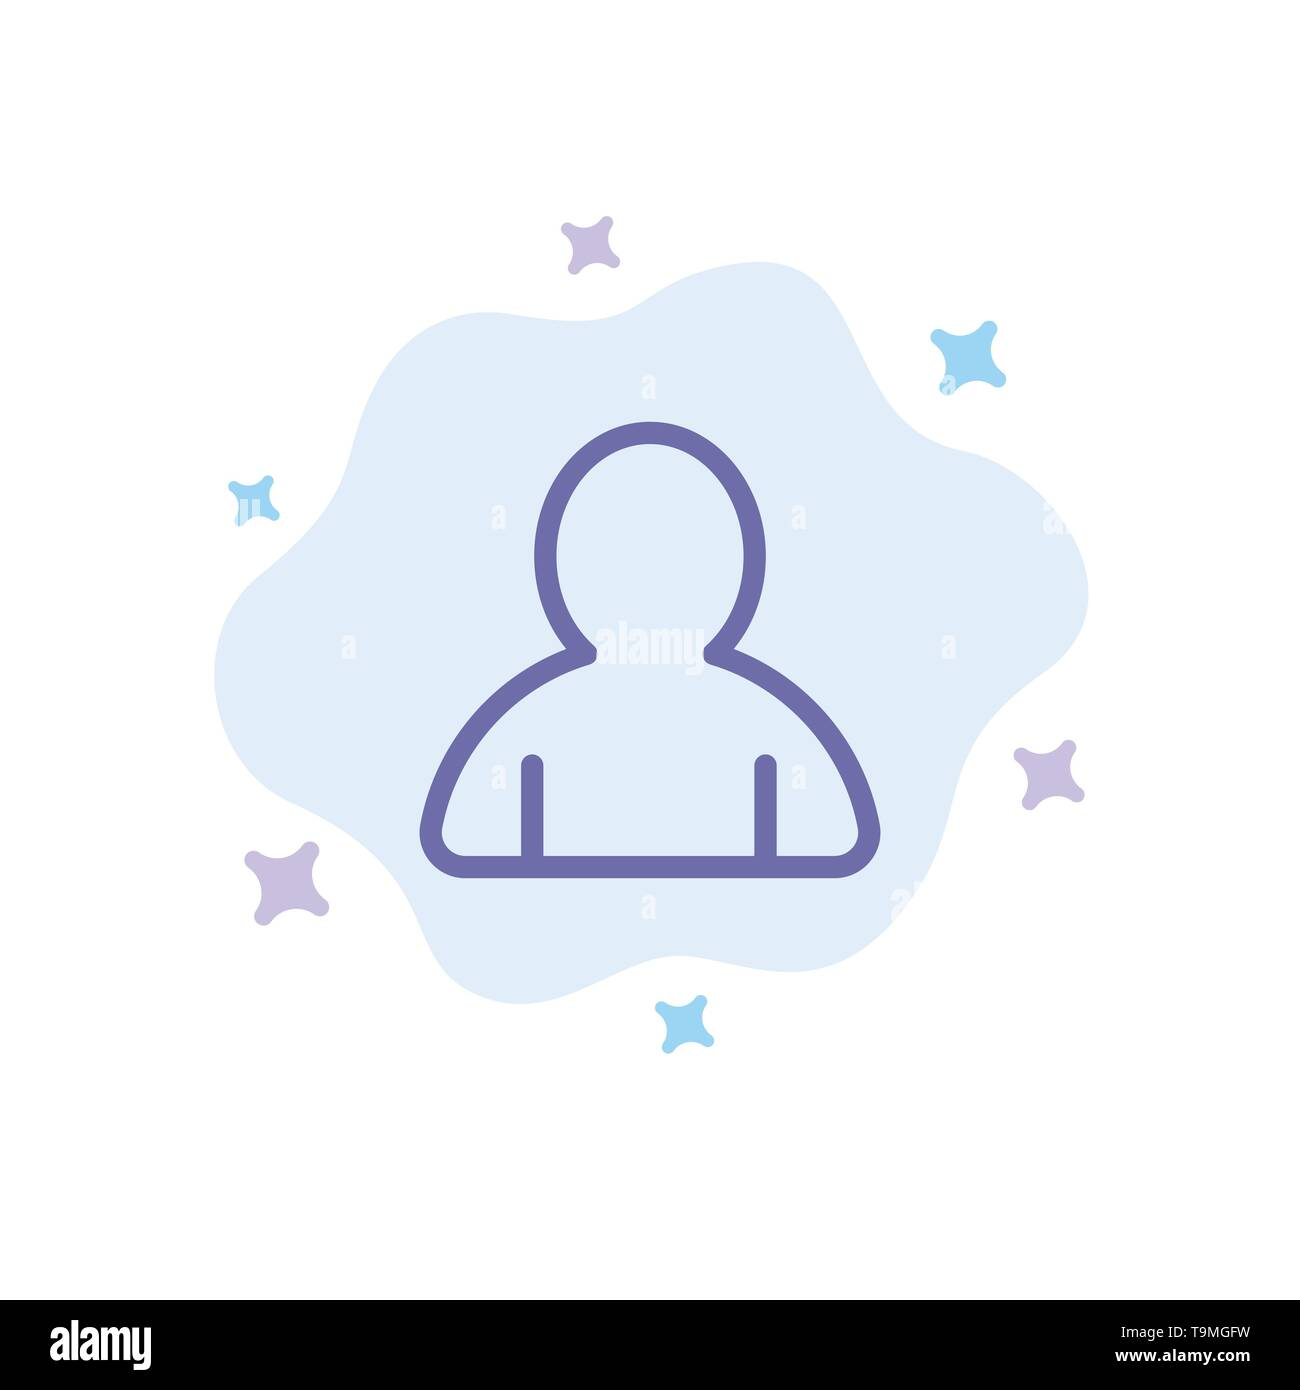 Account, Avatar, User Blue Icon on Abstract Cloud Background - Stock Image